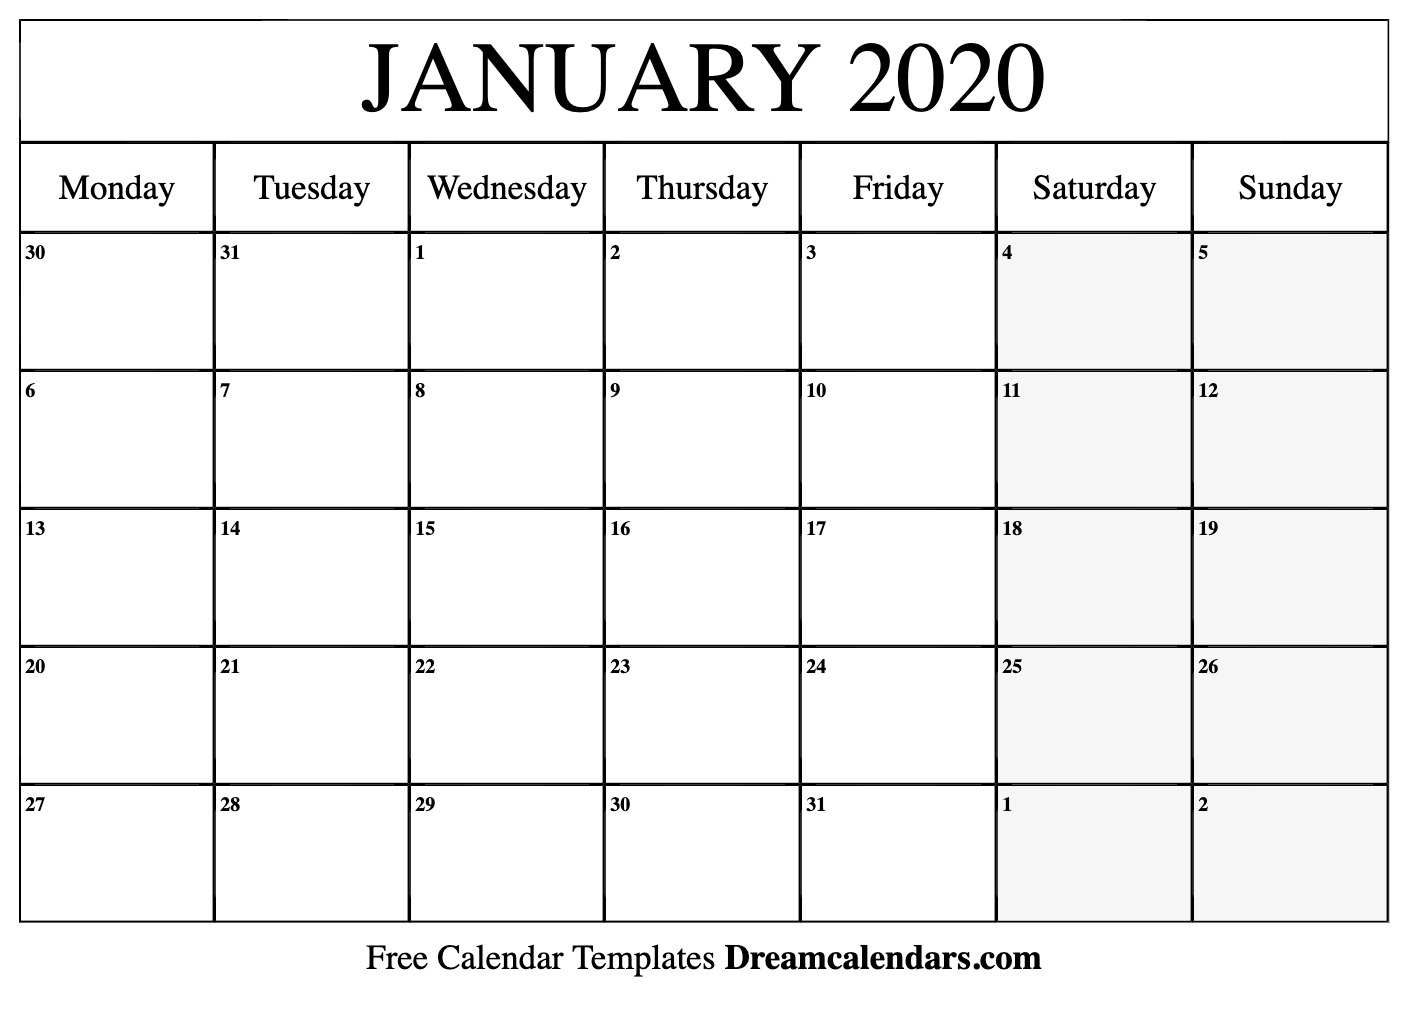 January 2020 Calendar Editable - Wpa.wpart.co